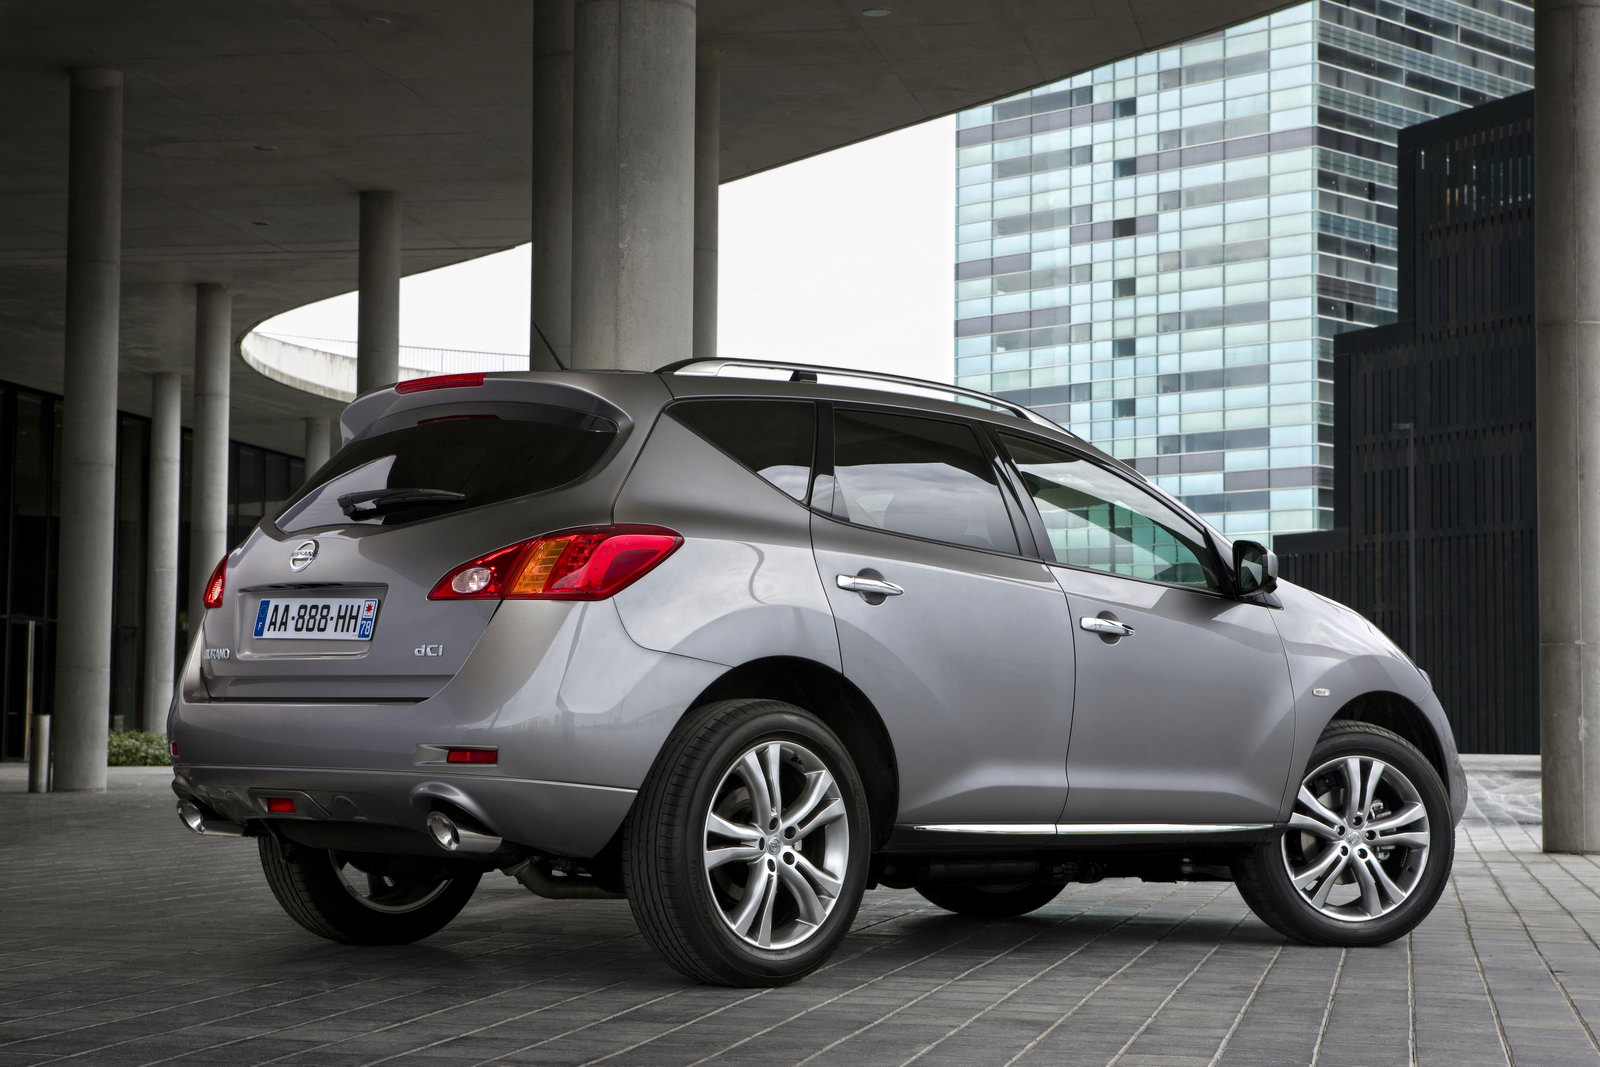 2011 nissan murano Nissan Murano scheduled to arrive on Indian shores in Late 2011